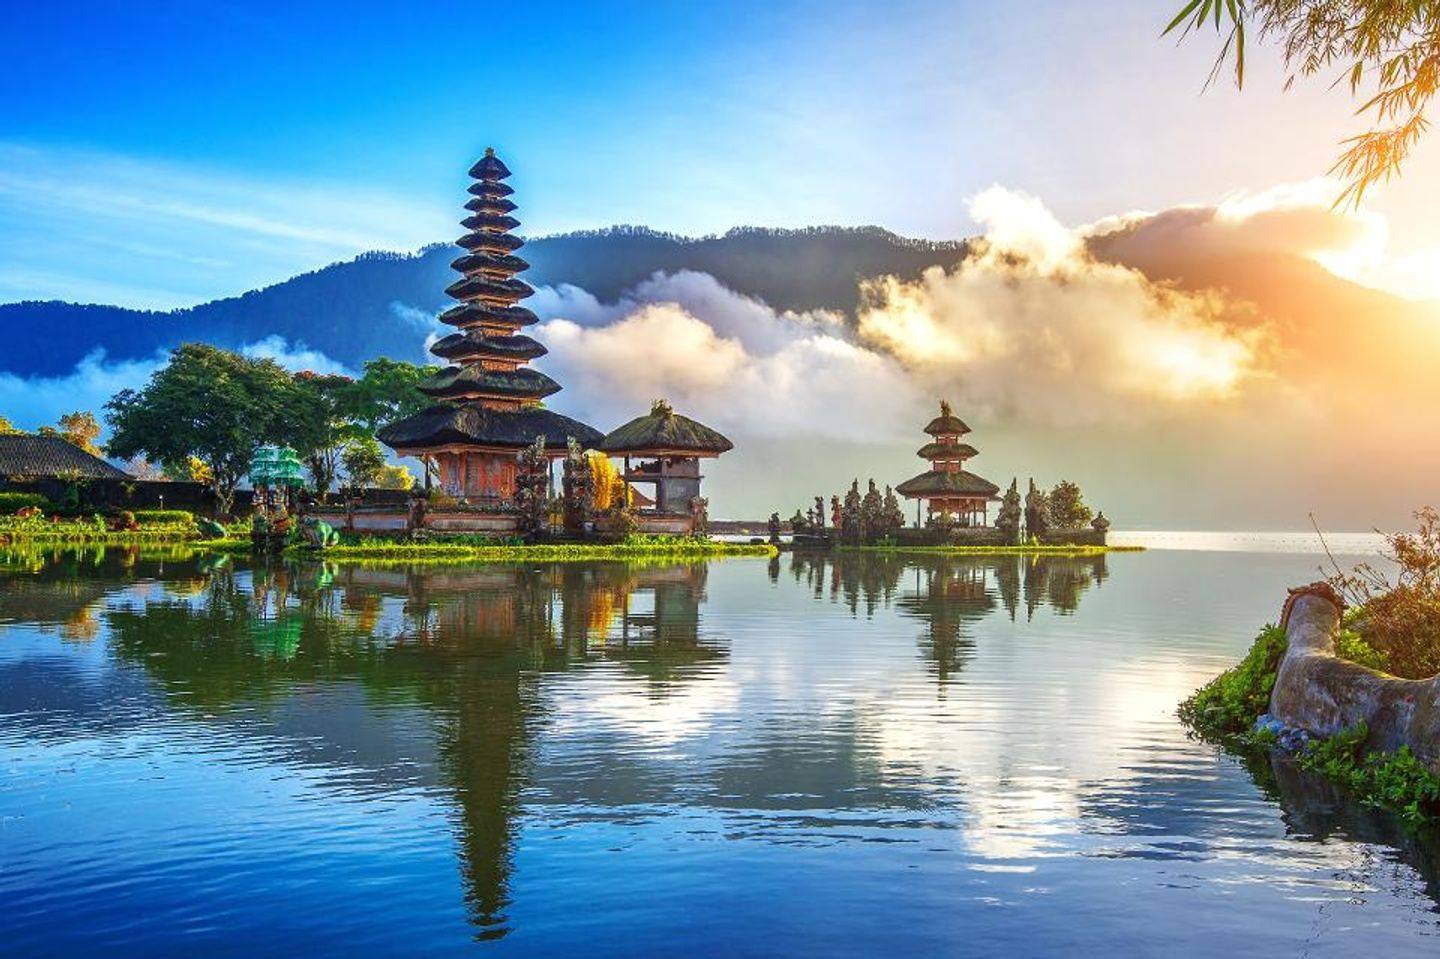 The bali times, be part of it